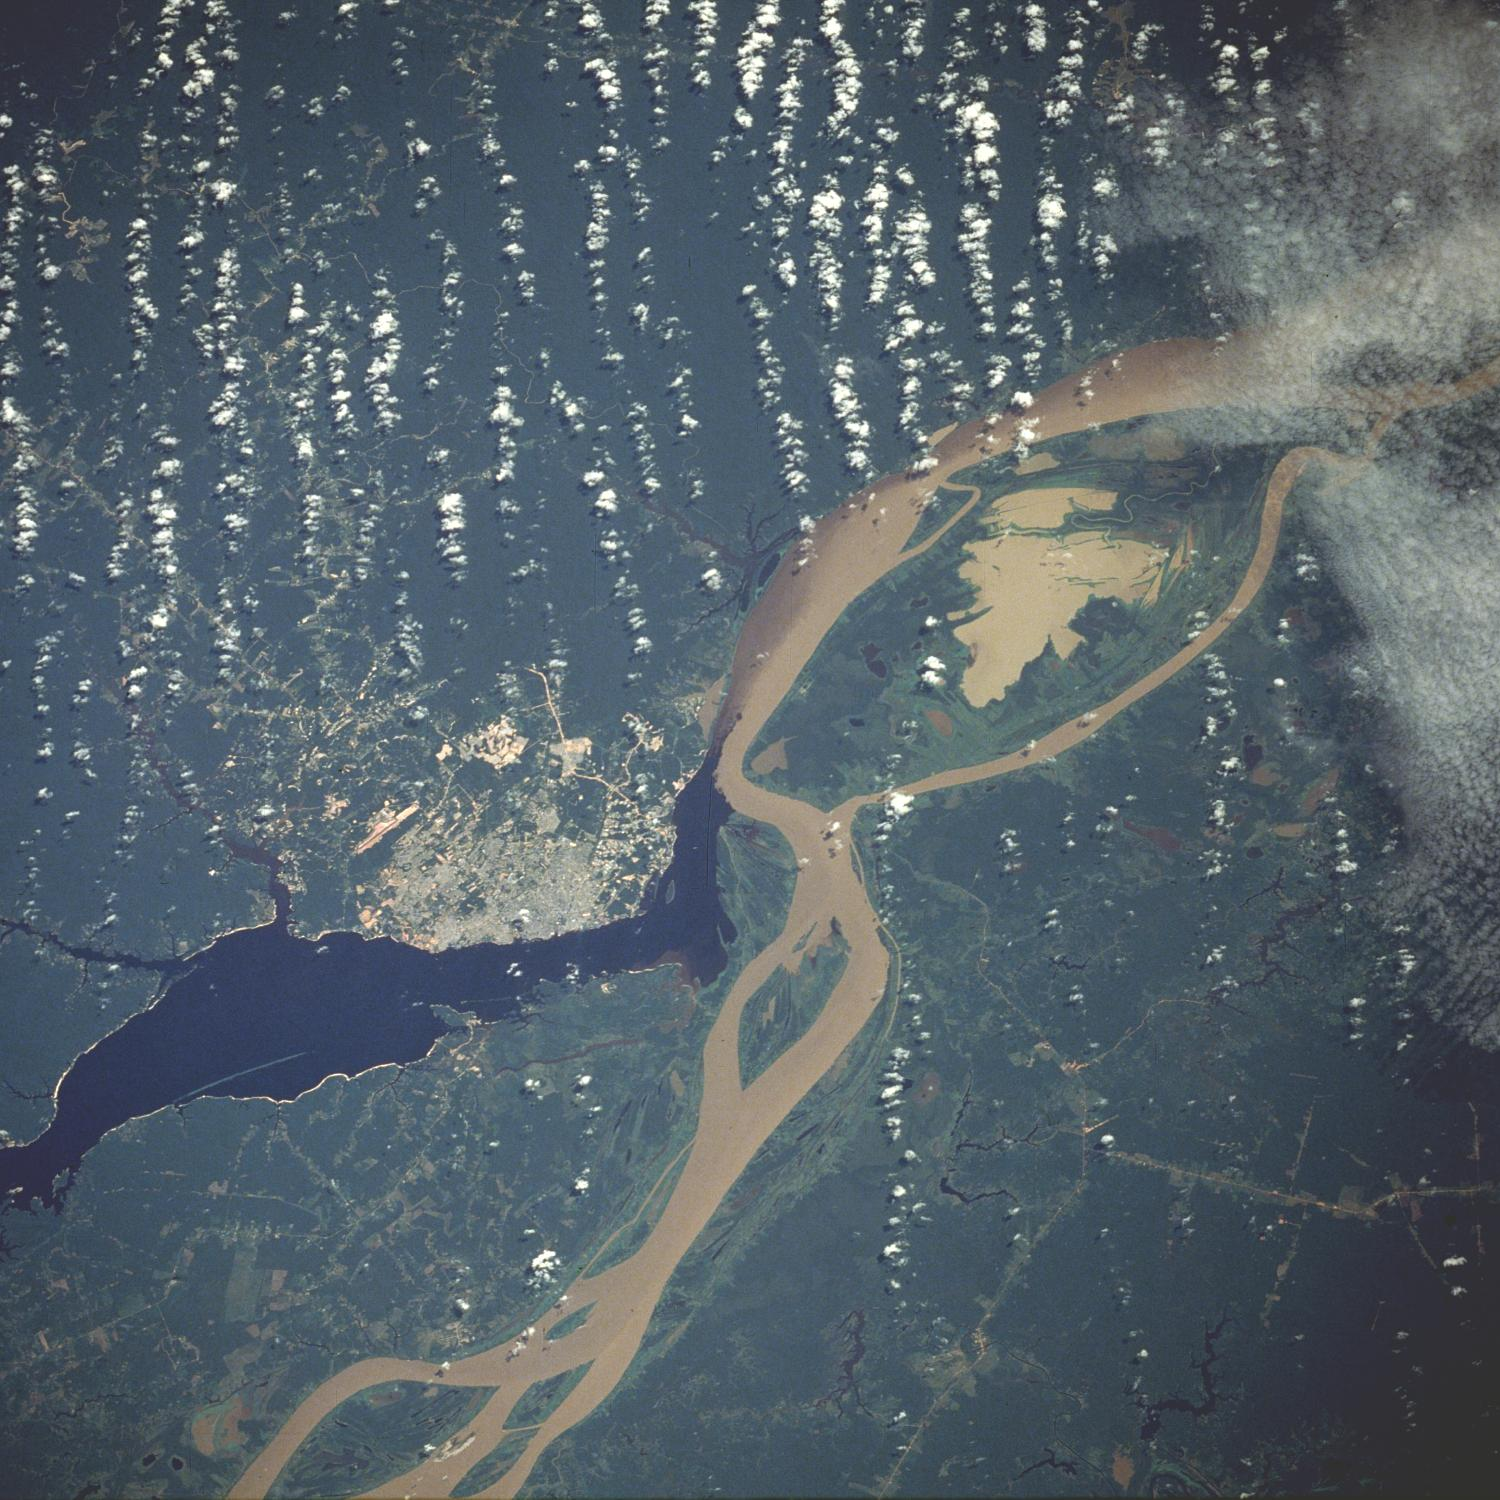 Mapa de Satellite Image, Photo of Manaus, Amazonas, Brazil